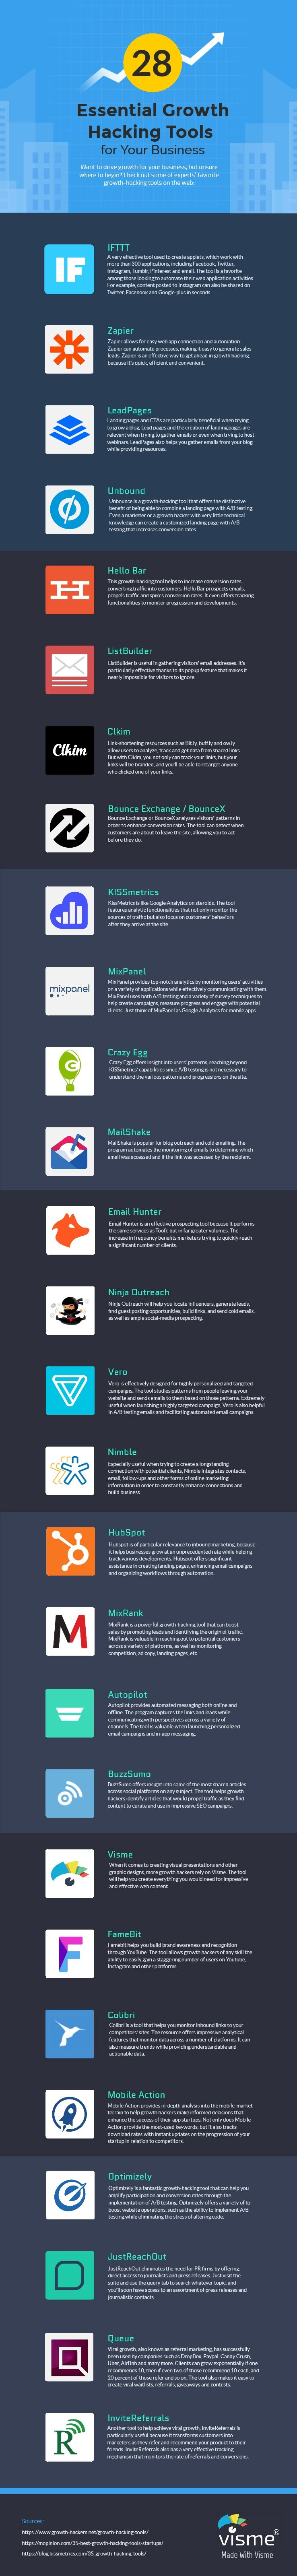 28 Essential Growth Hacking Tools to Rapidly Build Your Business #Infographic